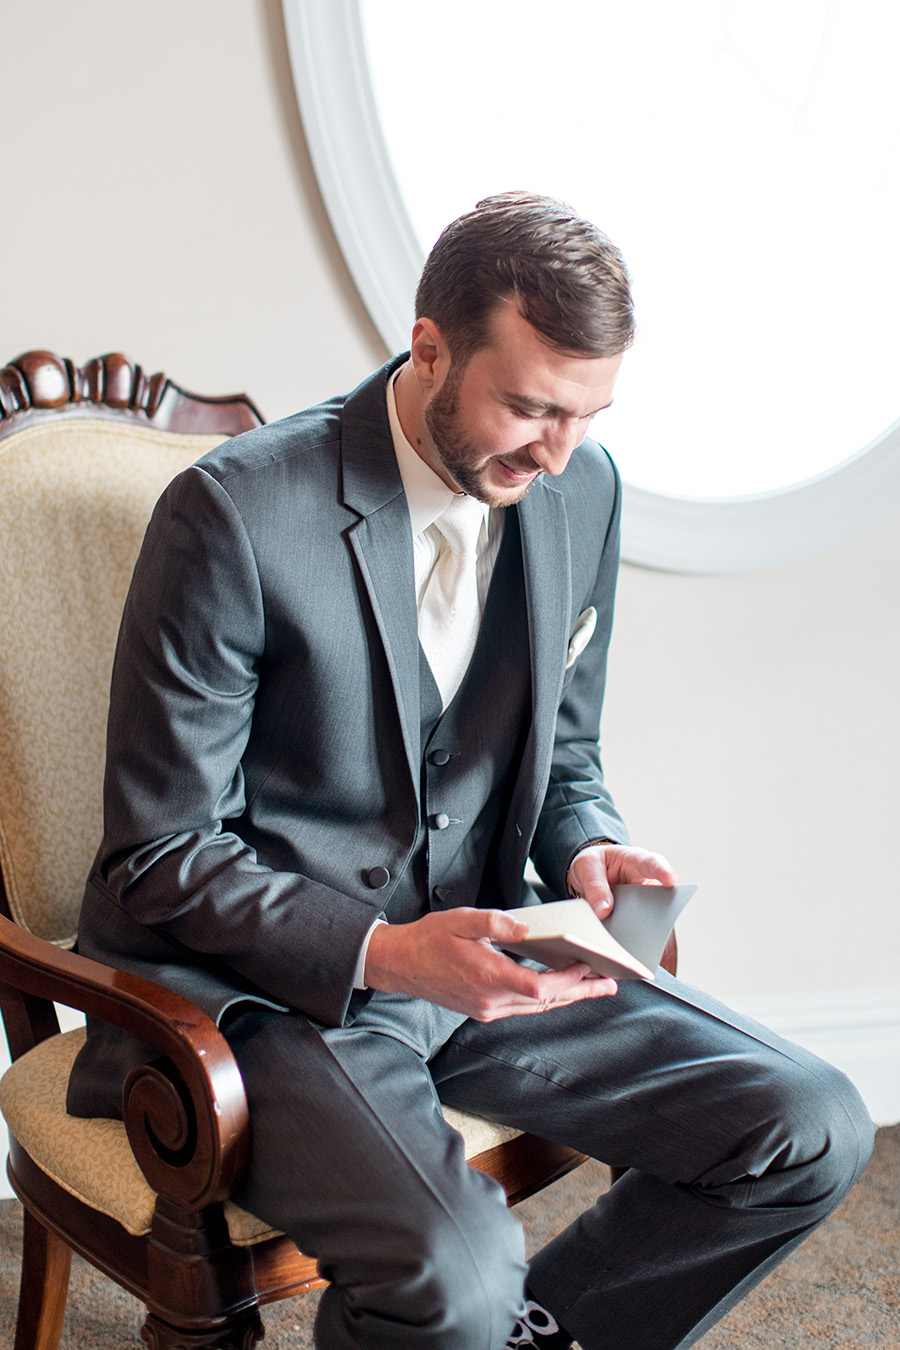 reading letters on the wedding day